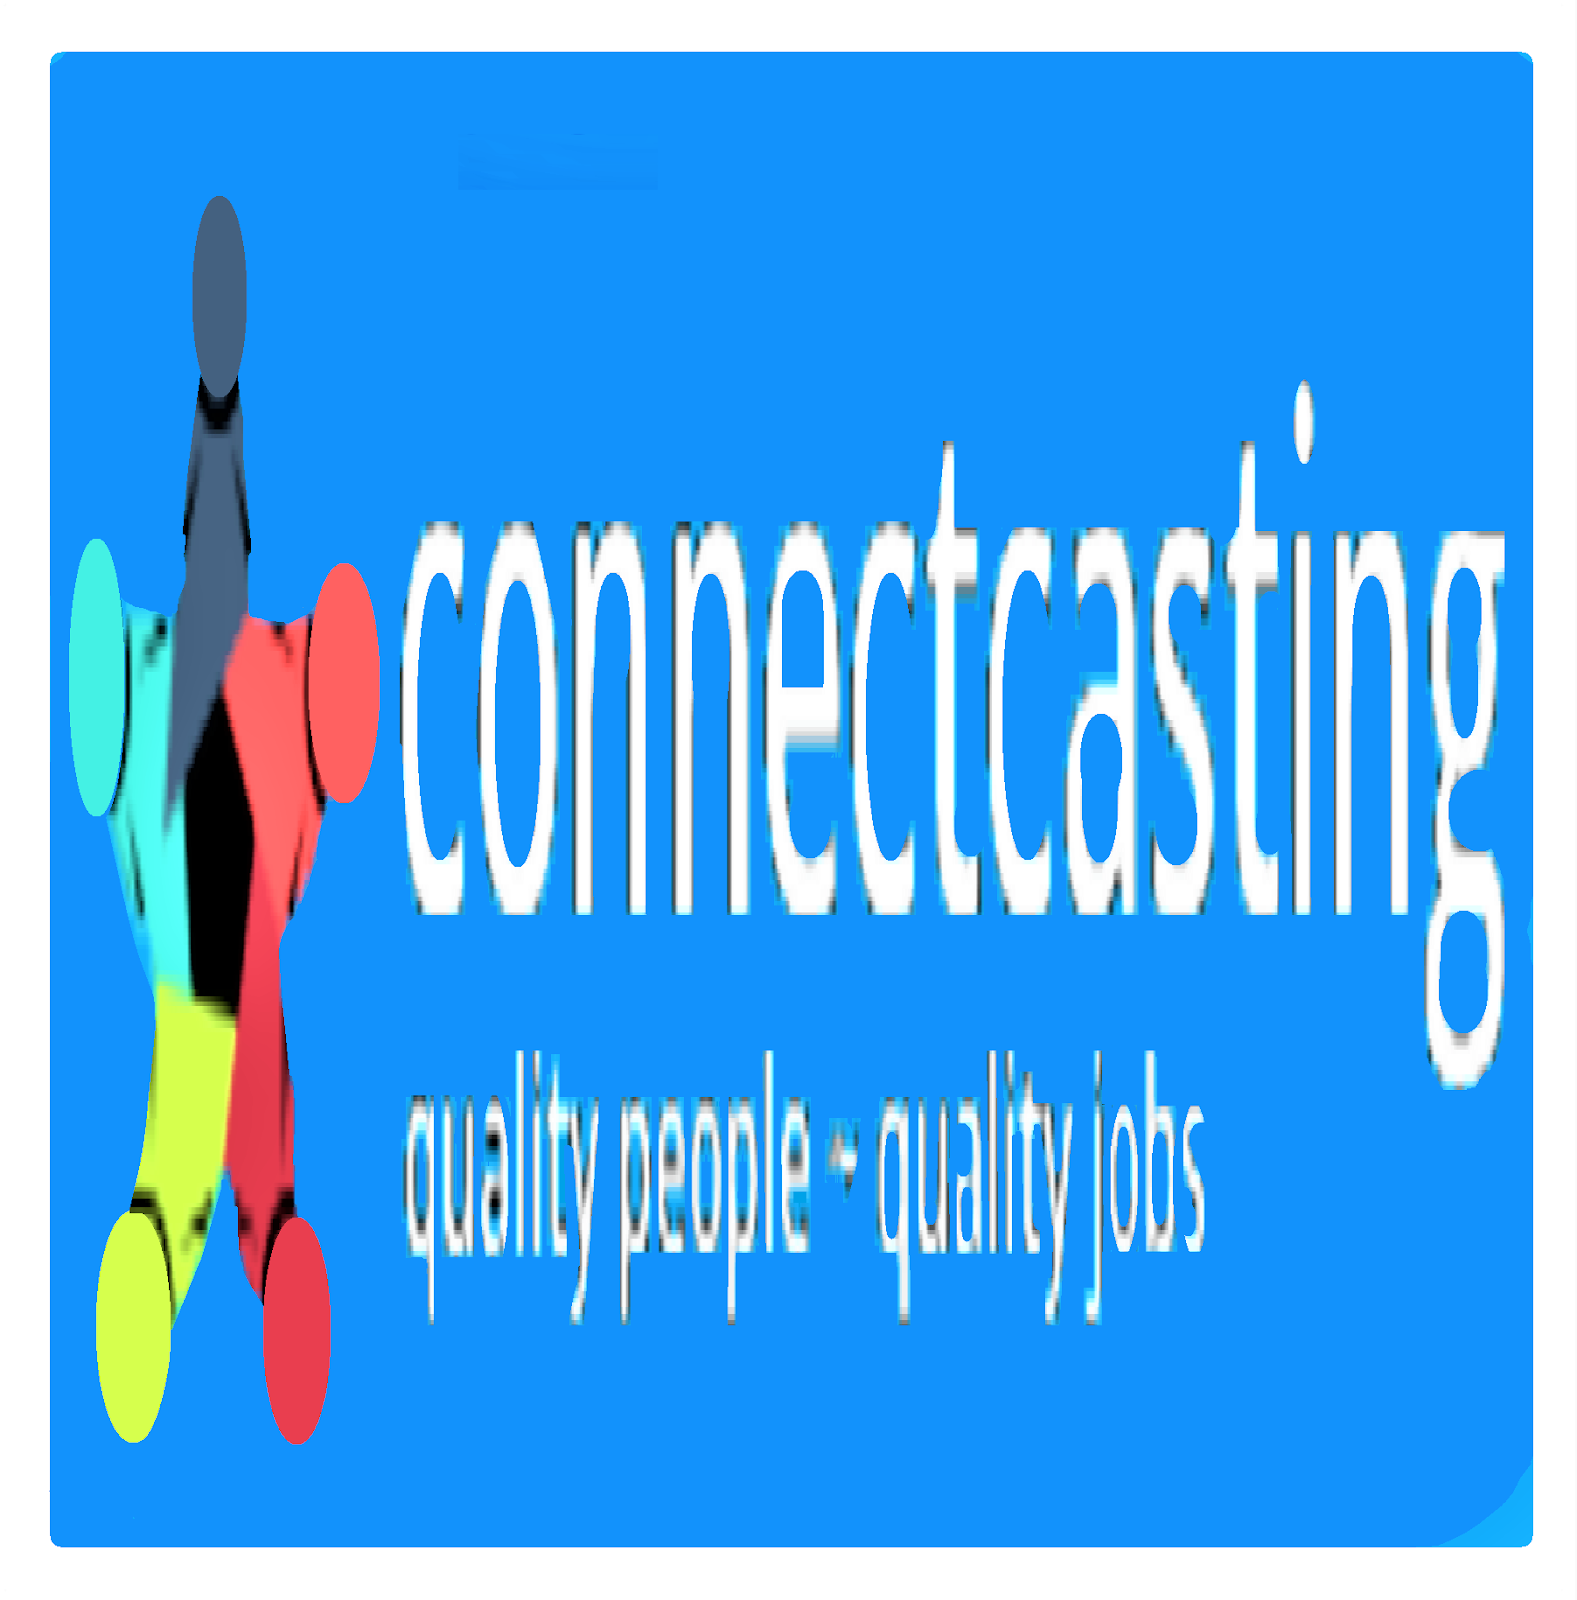 ConnectCasting